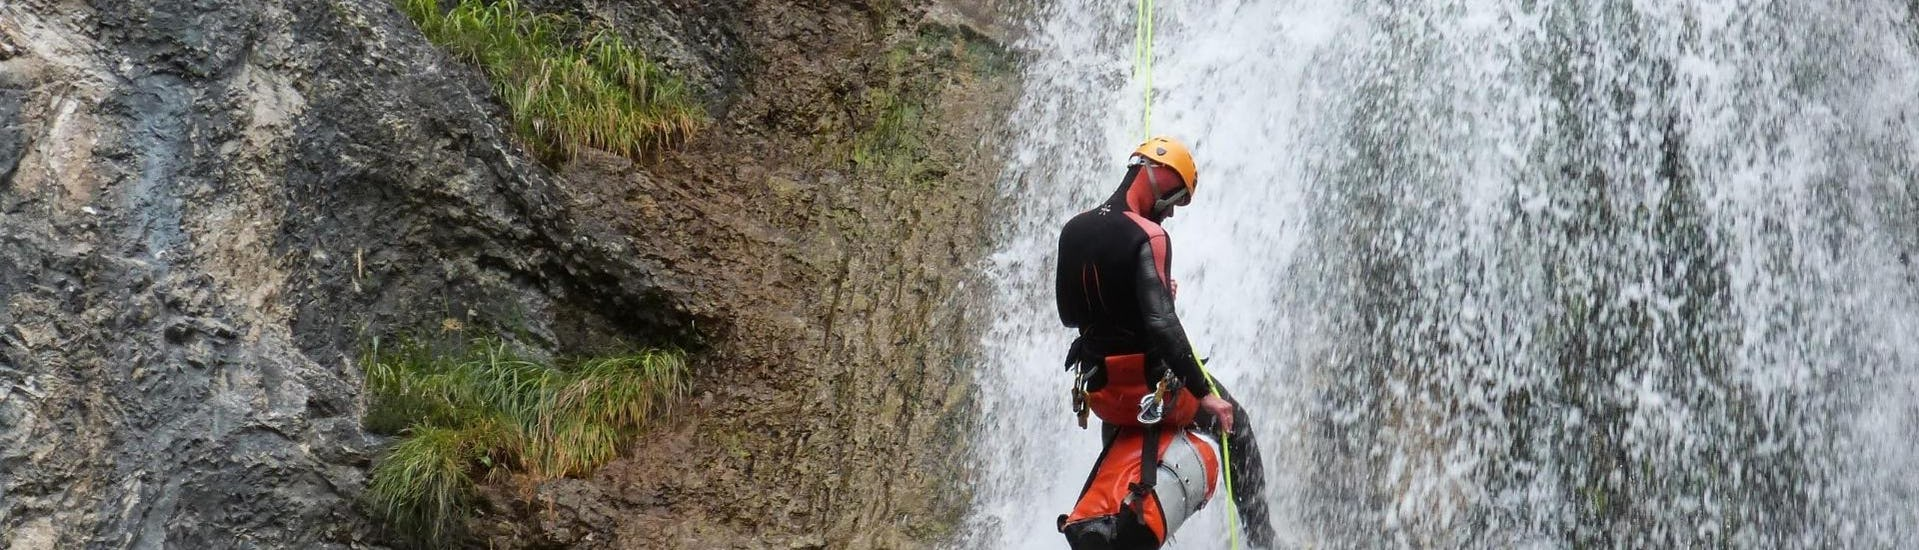 """A guy is abseiling down a rock during the Canyoning """"Redfox Short"""" - Enns Valley under the supervision of an experienced canyoning guide from best adventure company."""